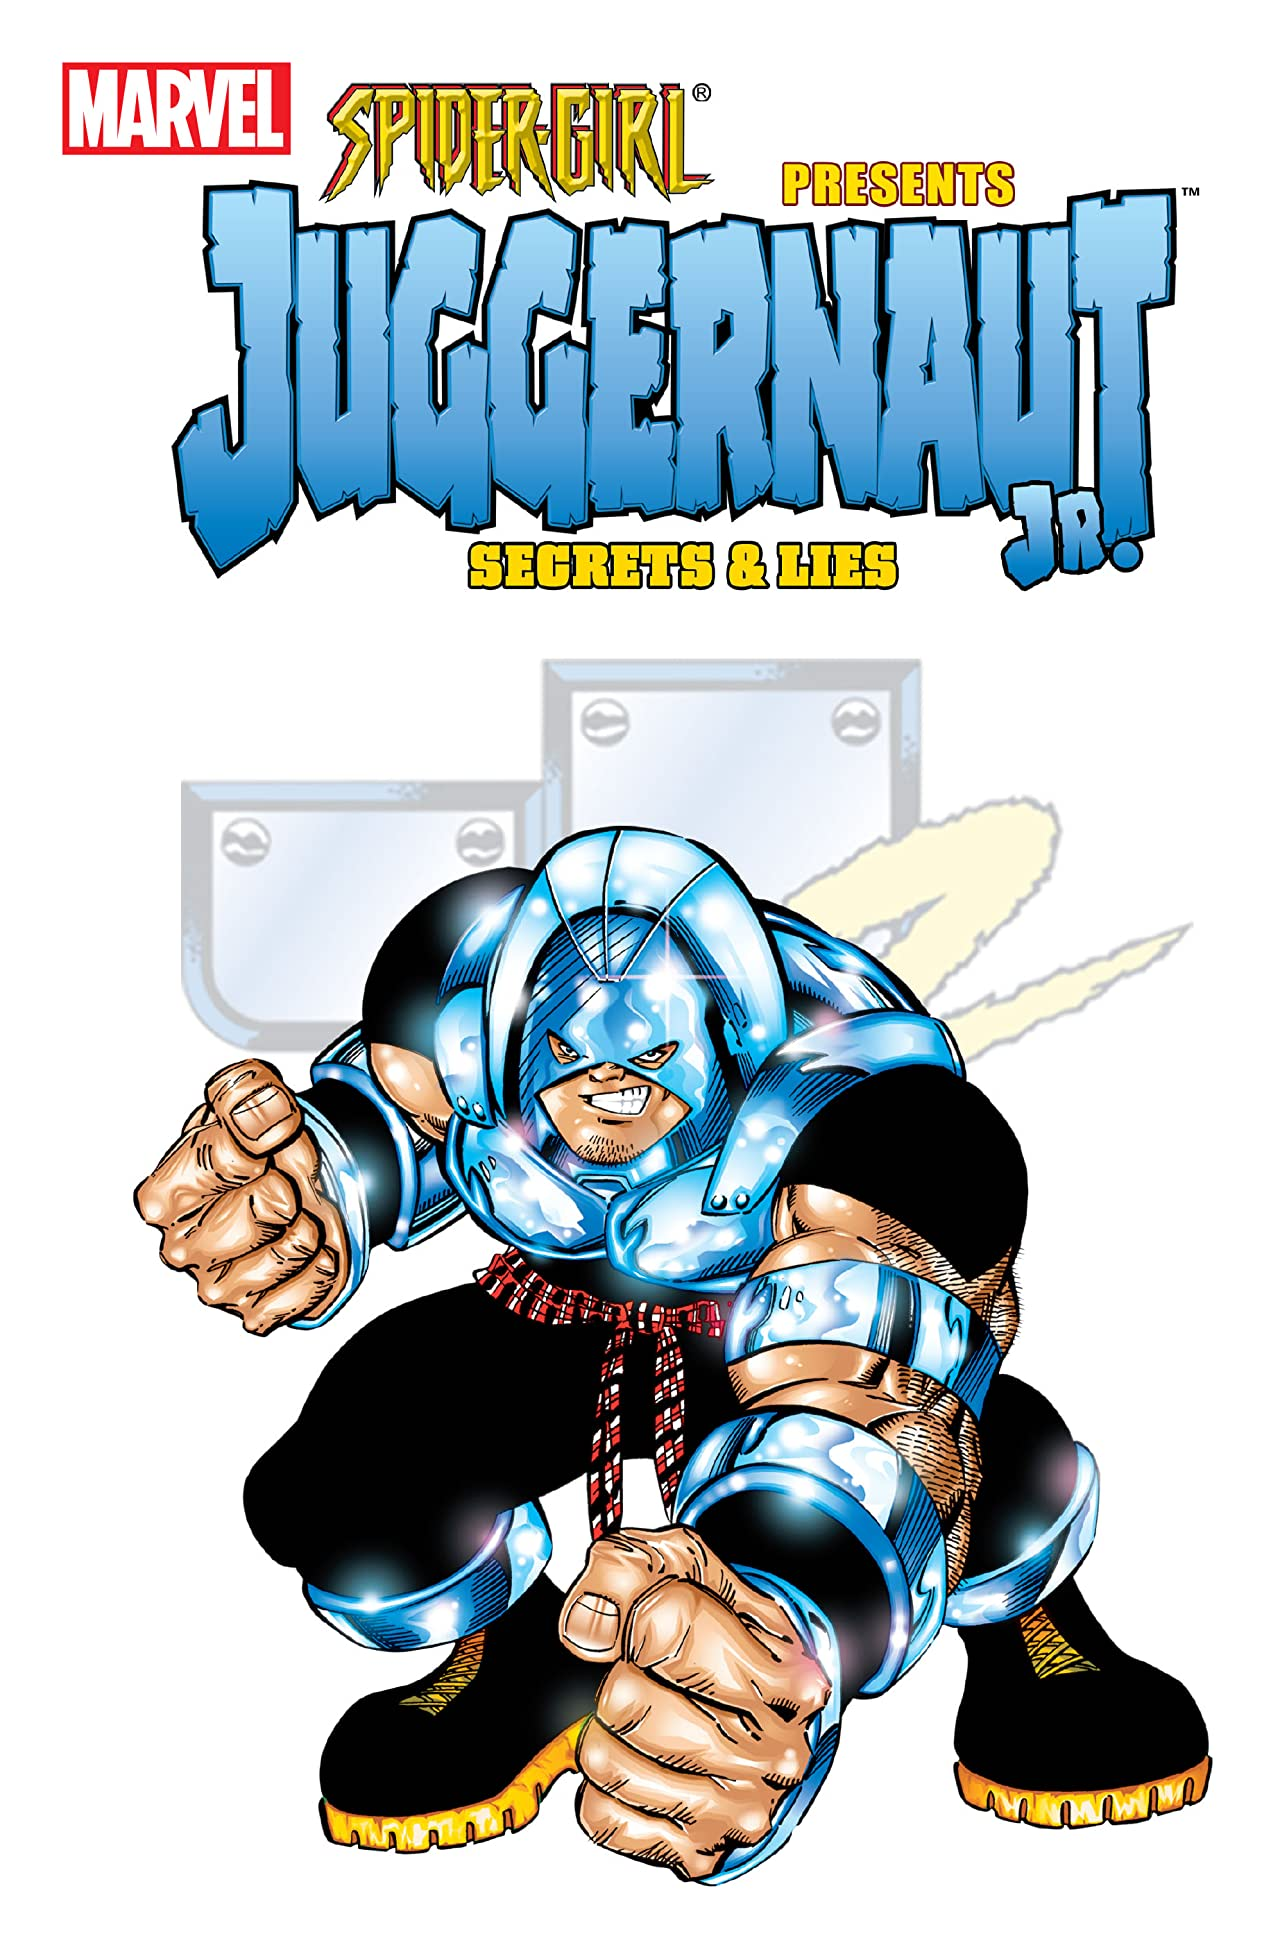 Spider-Girl Presents Juggernaut Jr.: Secrets And Lies